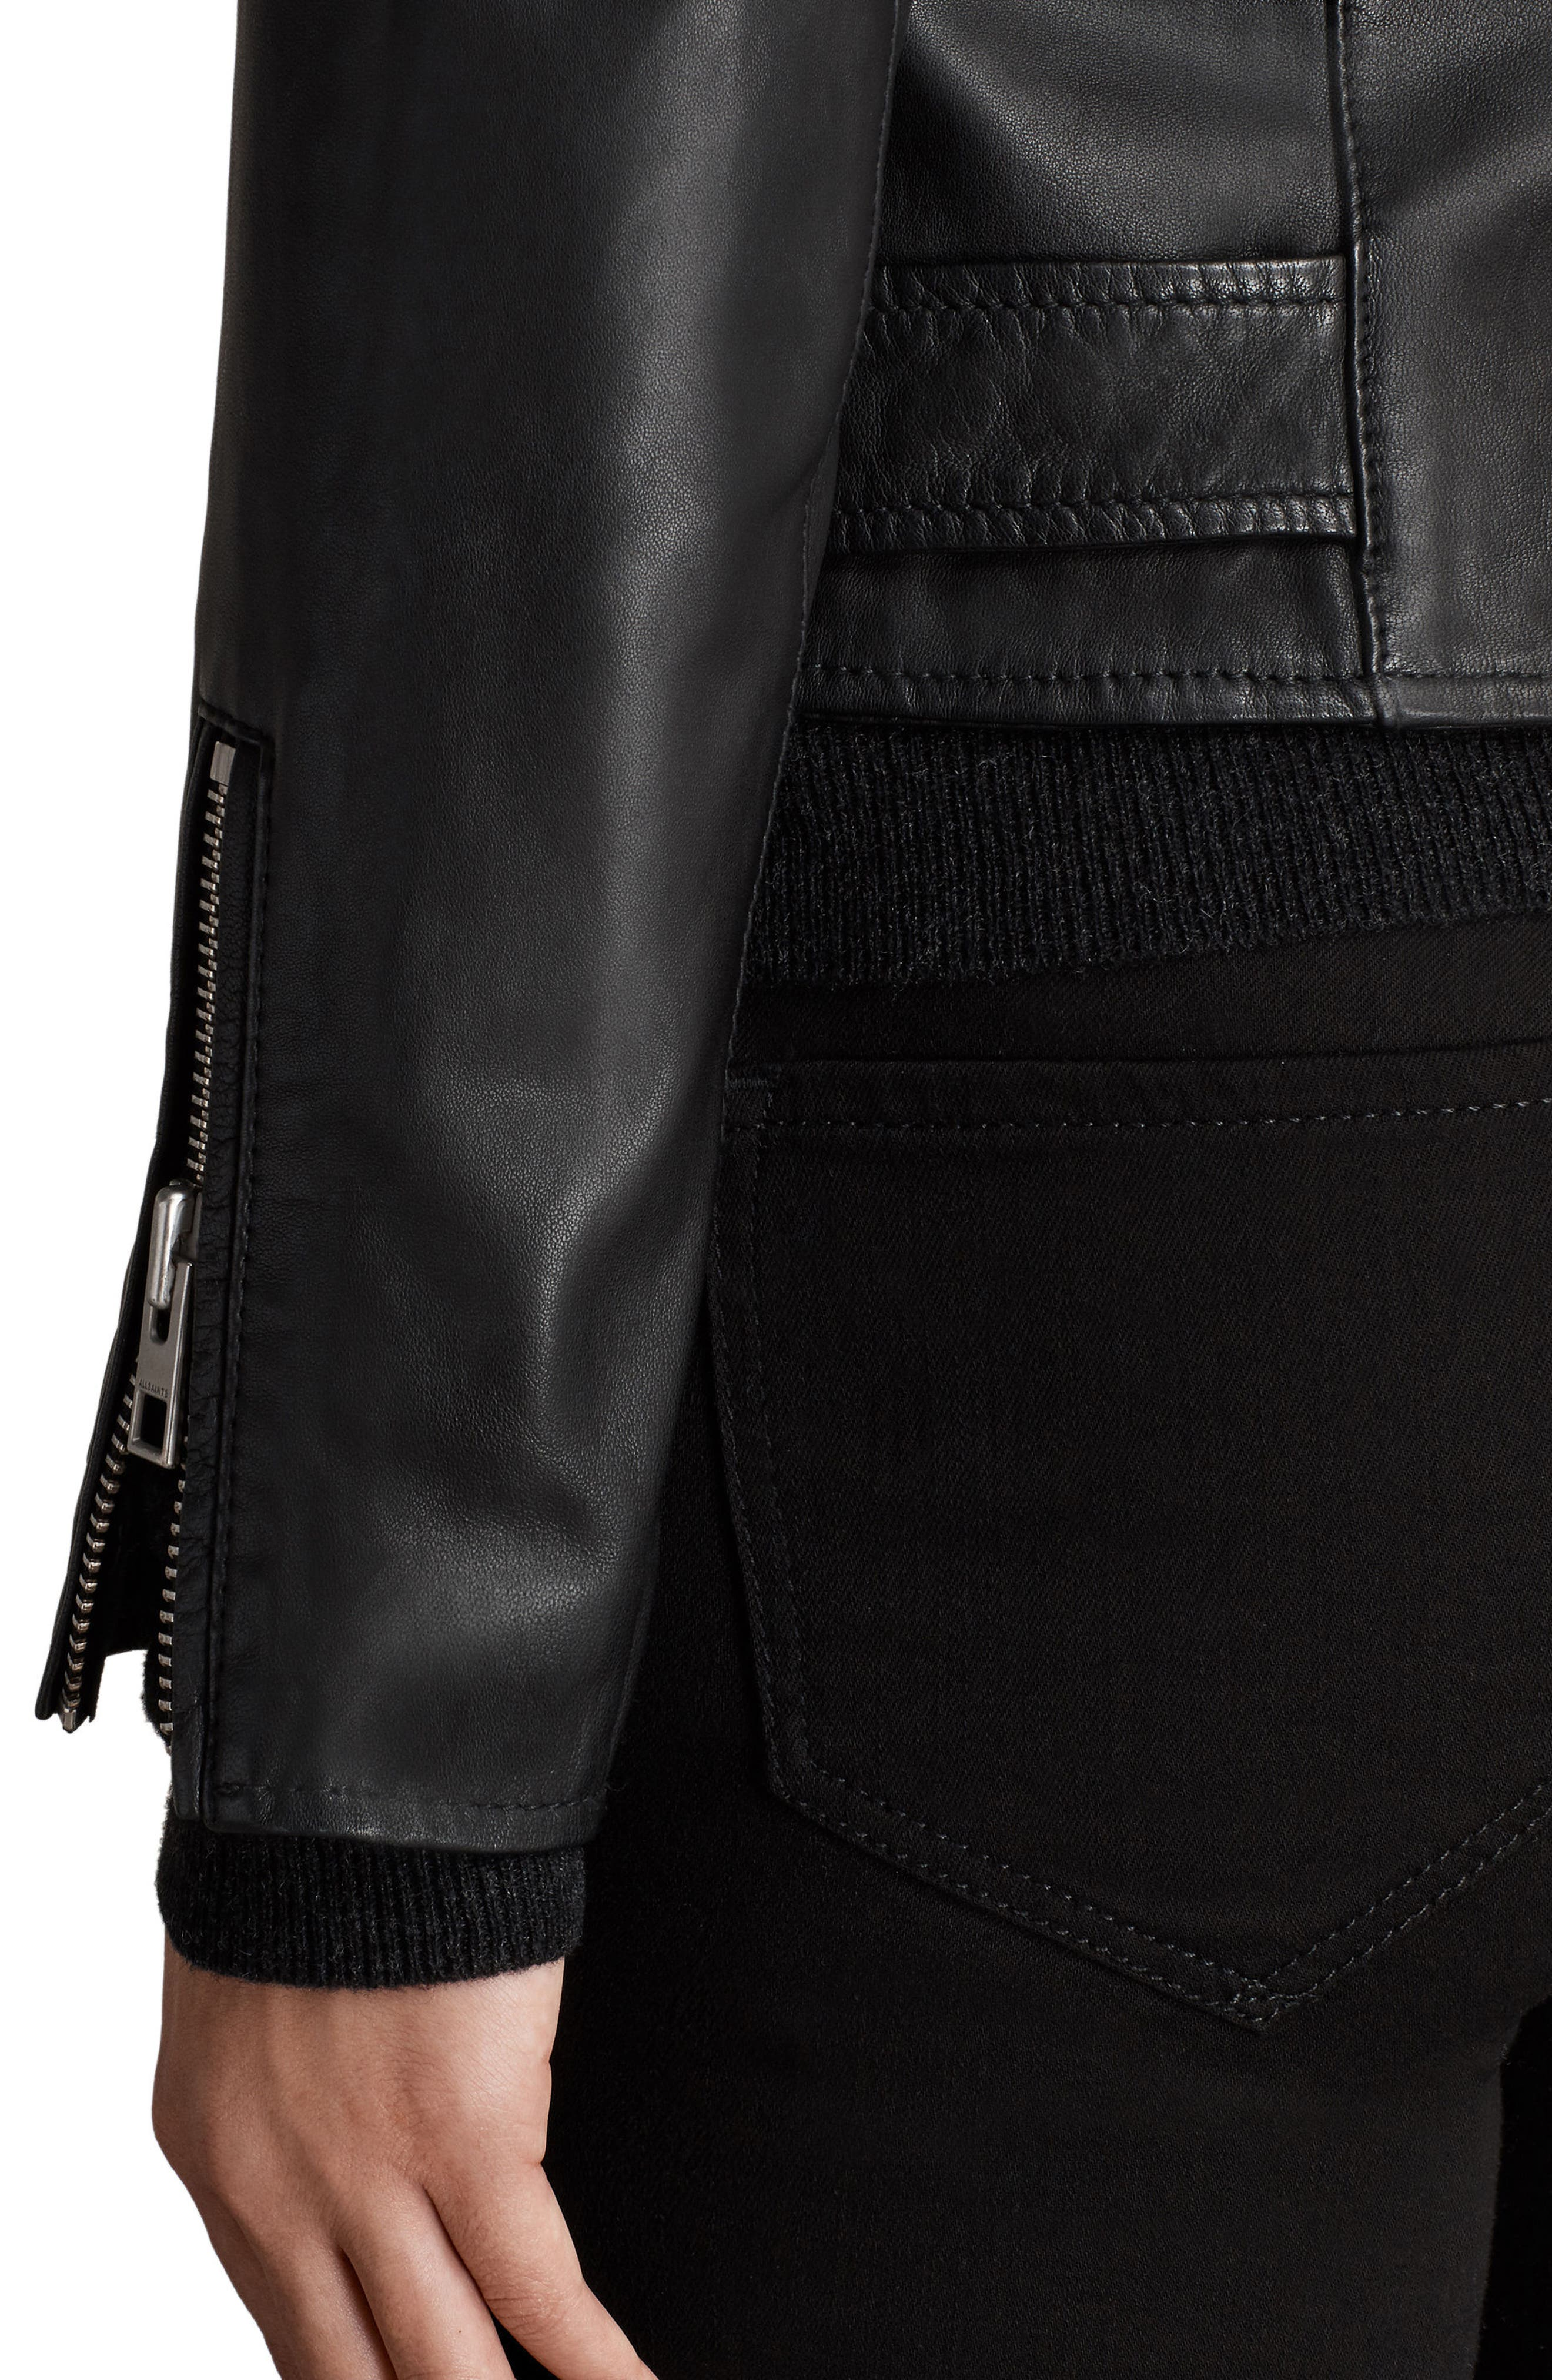 Balfern Leather Biker Jacket,                             Alternate thumbnail 4, color,                             Black